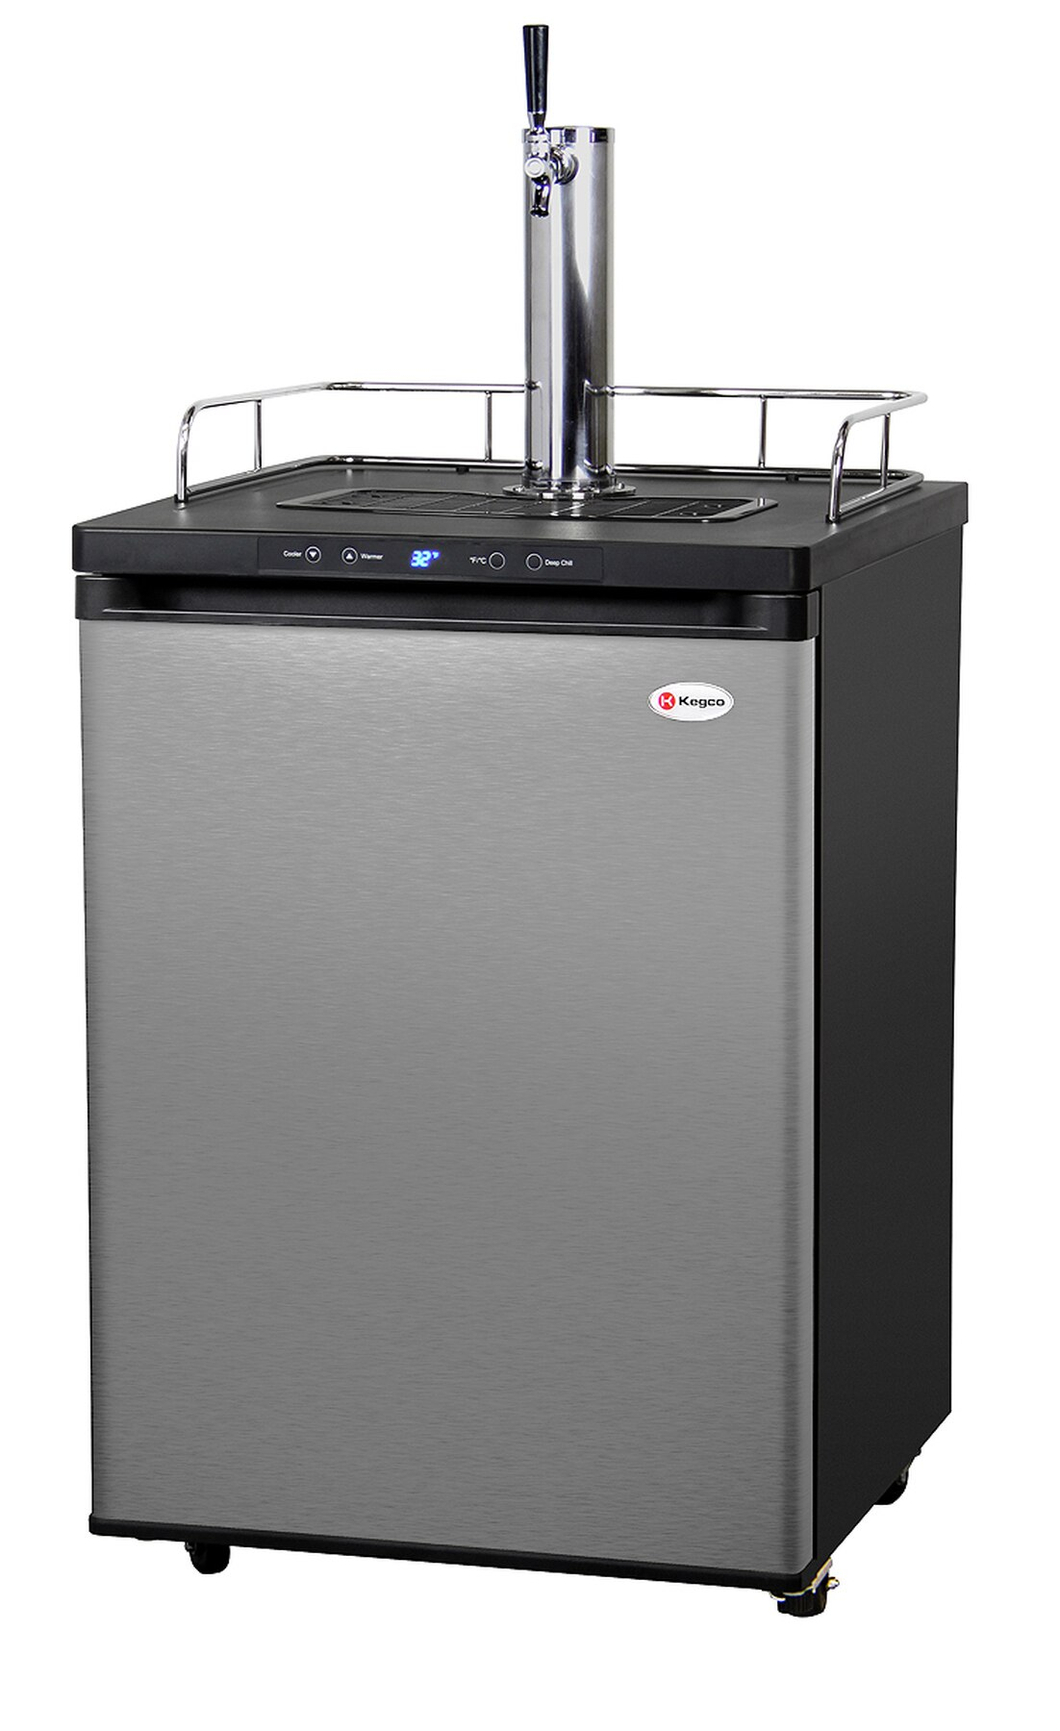 KEGCO KOM30S-1 DIGITAL KOMBUCHA KEG COOLER - BLACK CABINET WITH STAINLESS STEEL DOOR